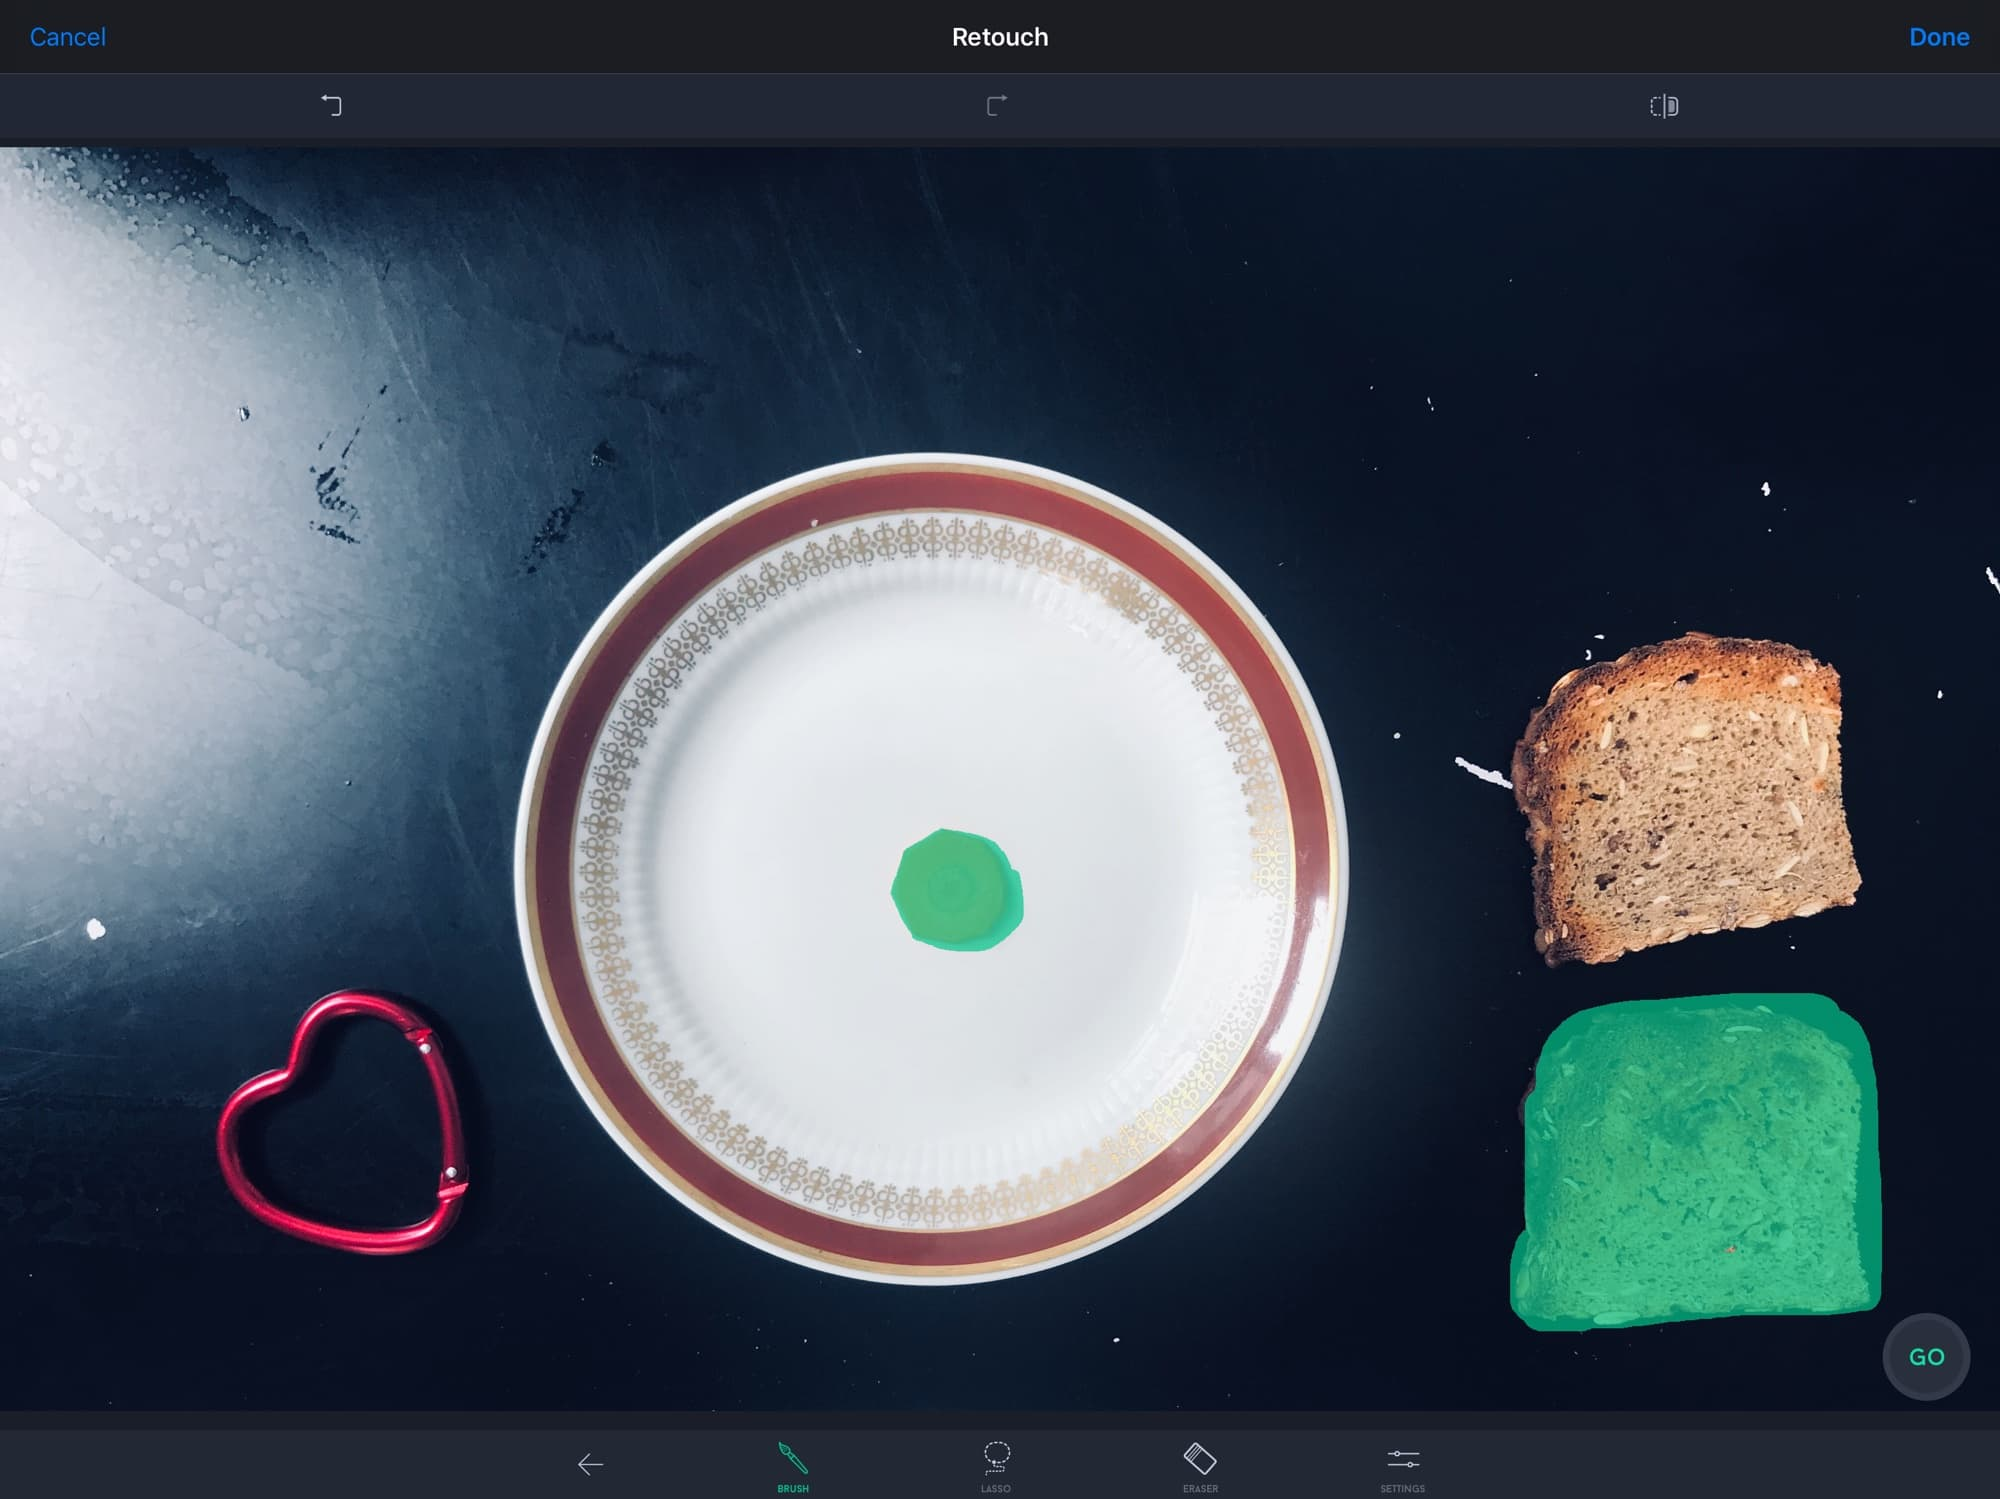 How will TouchRetouch manage with this delicious breakfast?